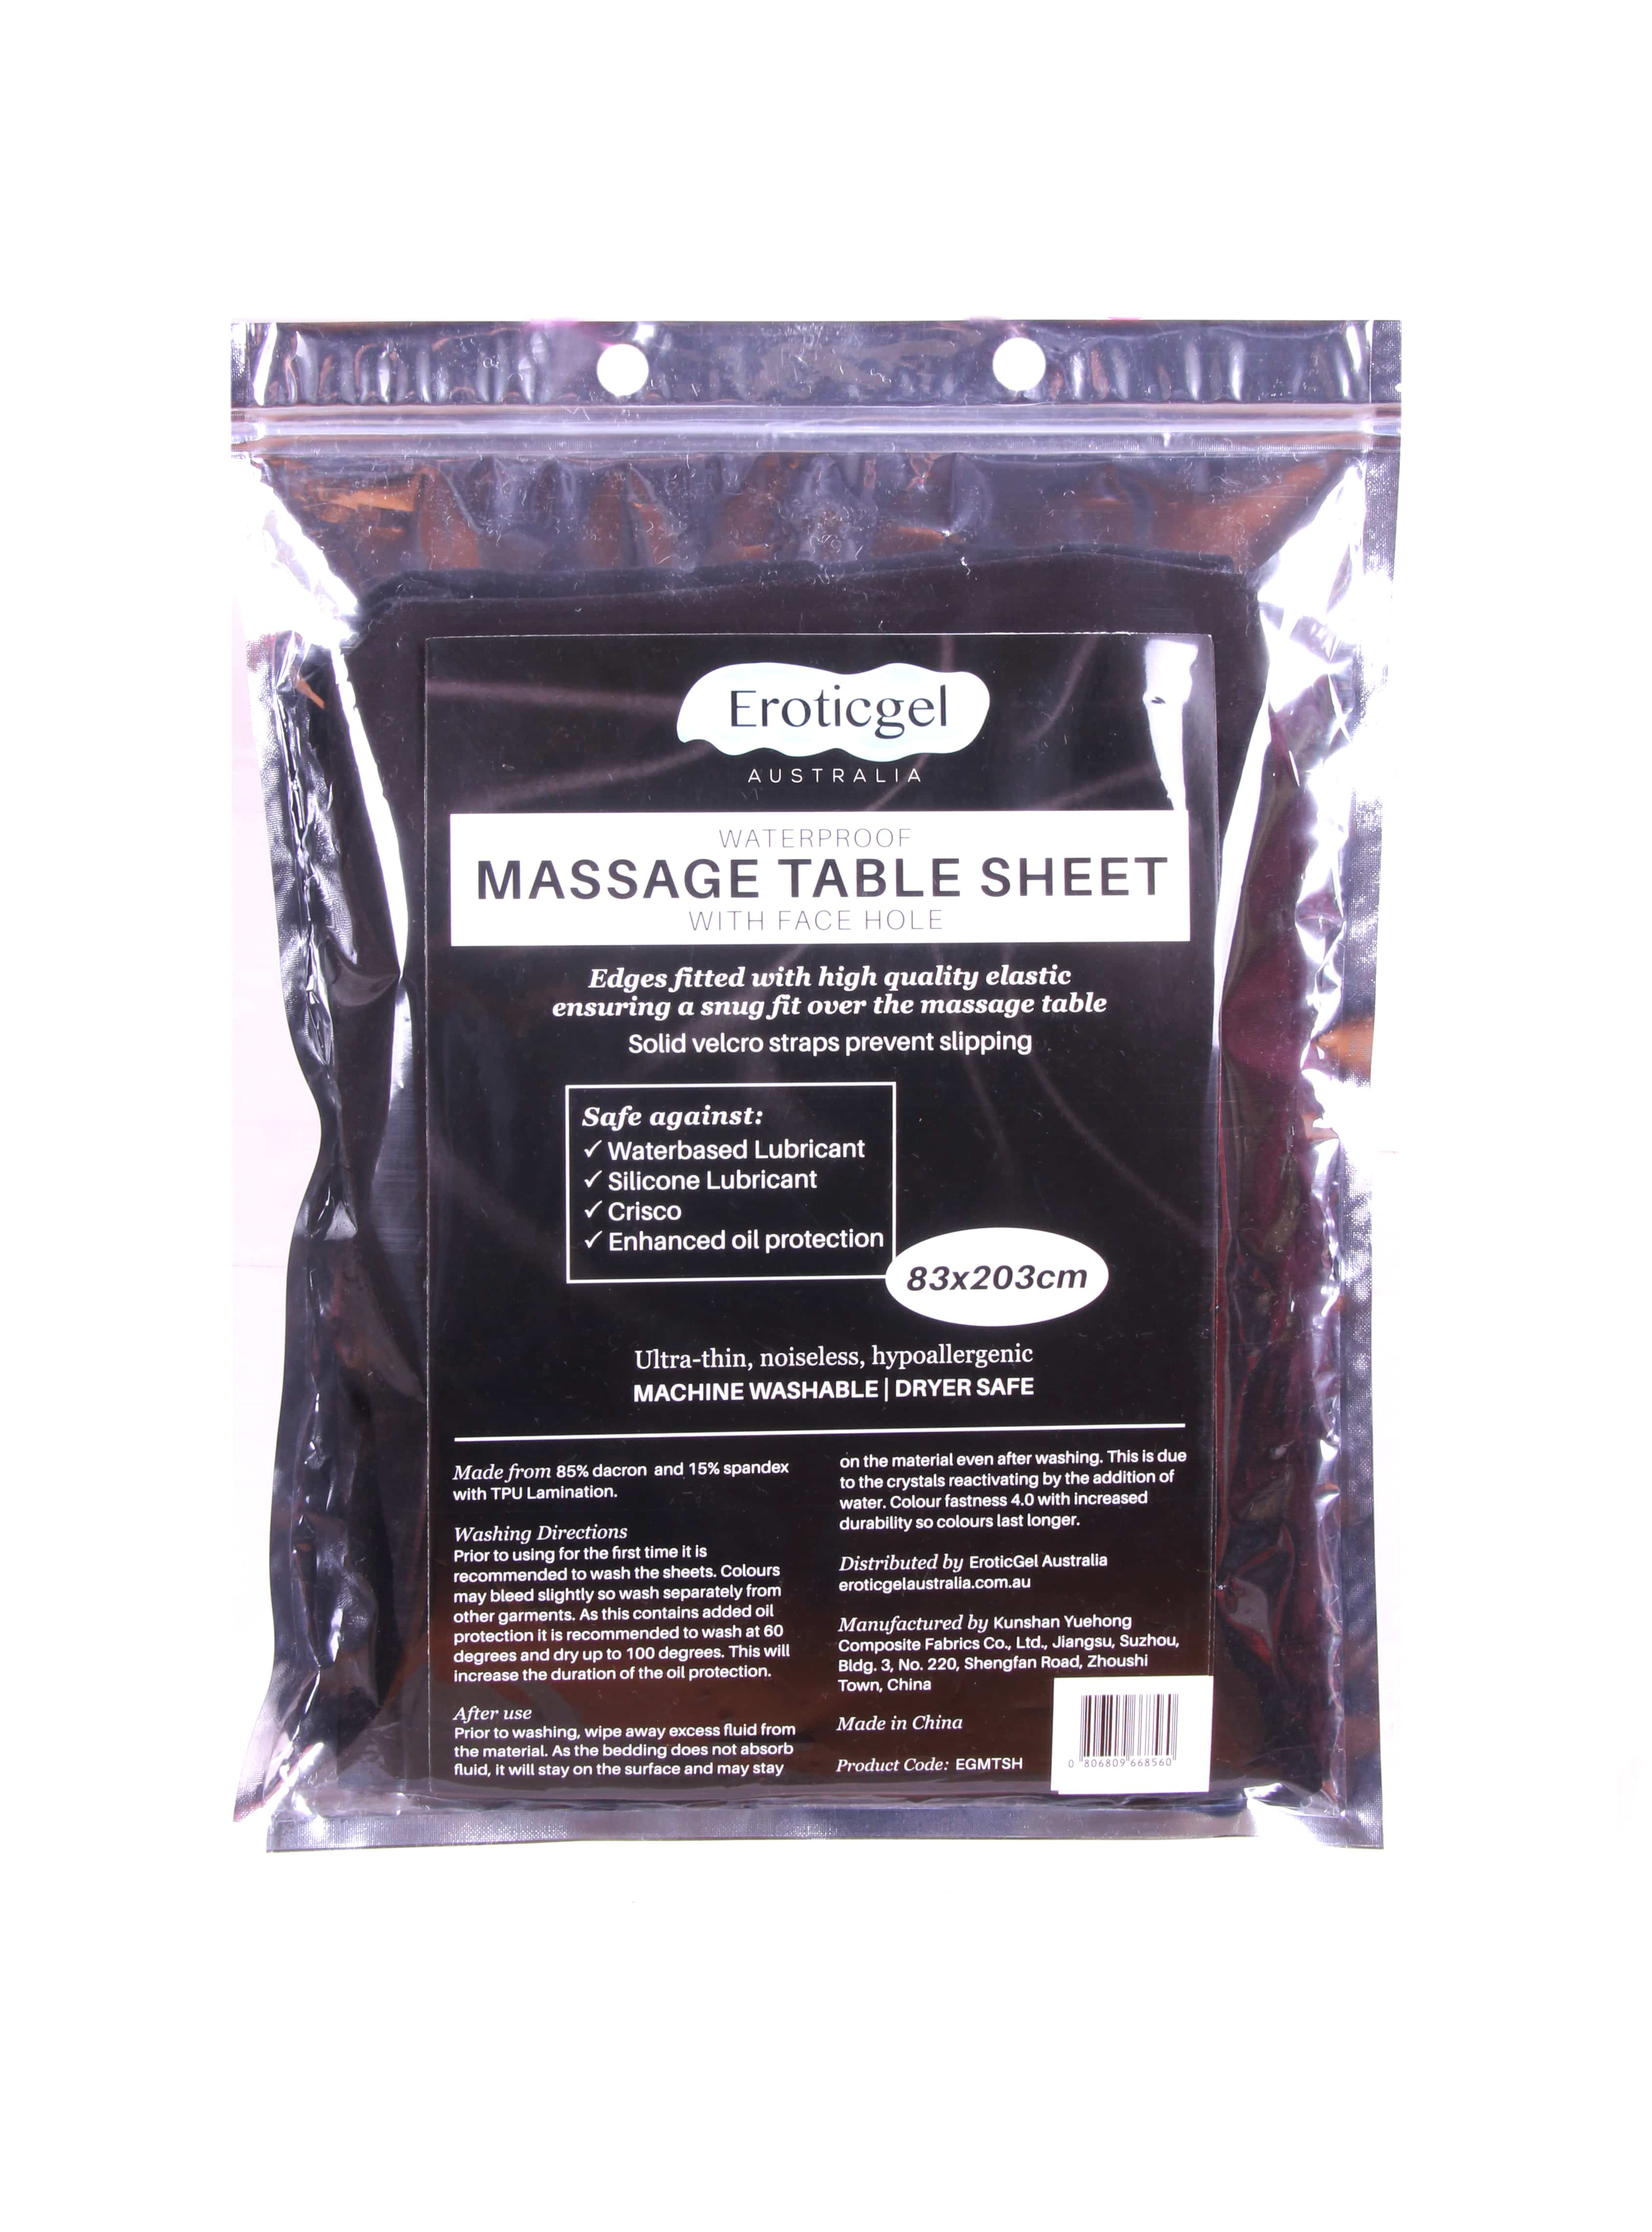 Eroticgel Massage Table Sheet Front with face hole